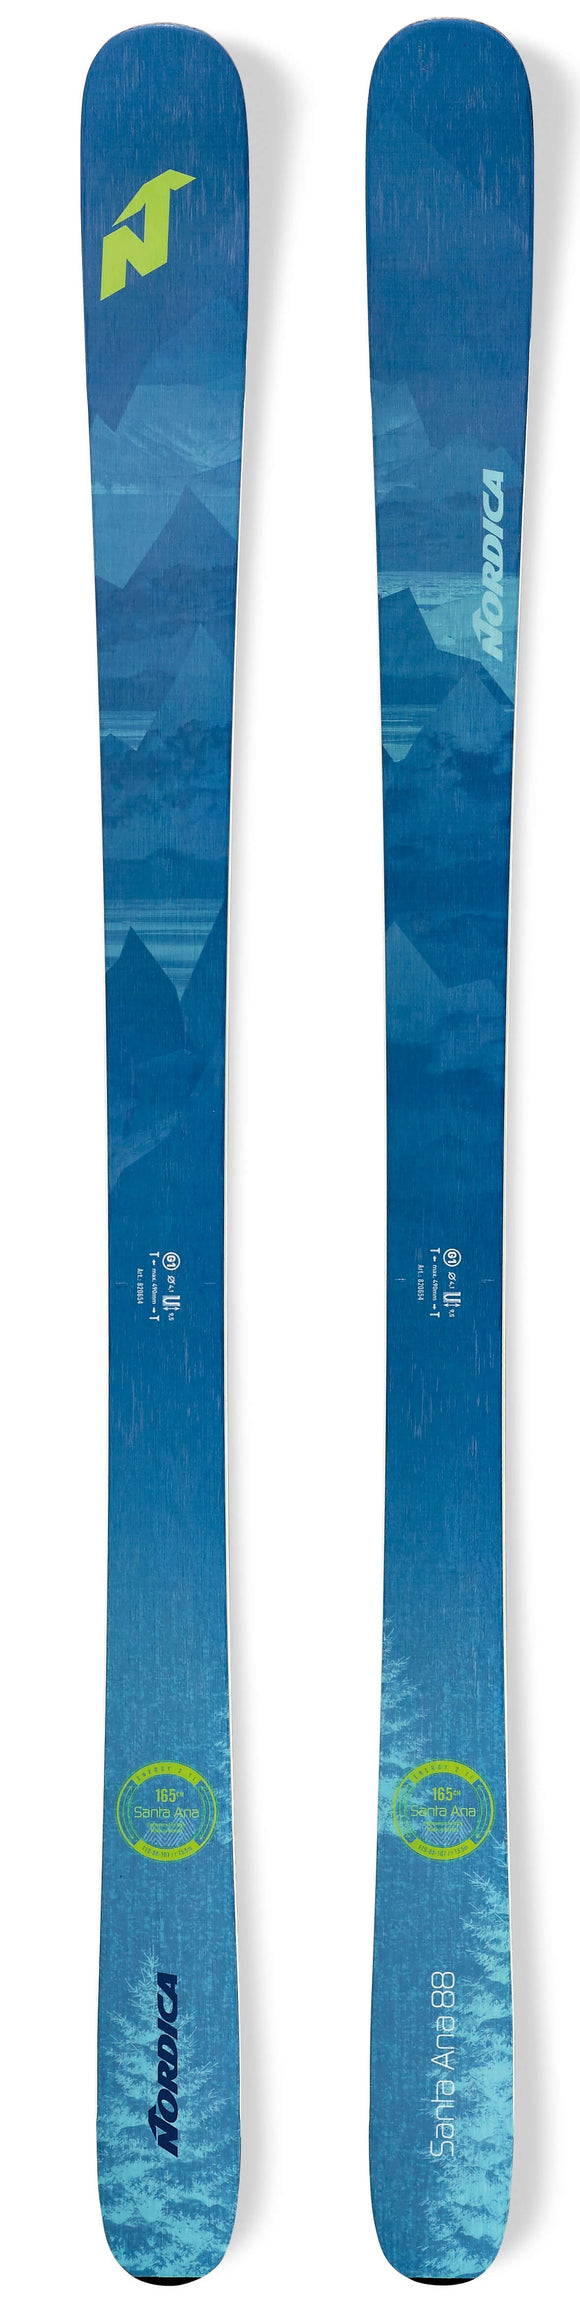 2020 Nordica Santa Ana 88 ladies snow skis - ProSkiGuy your Hometown Ski Shop on the web